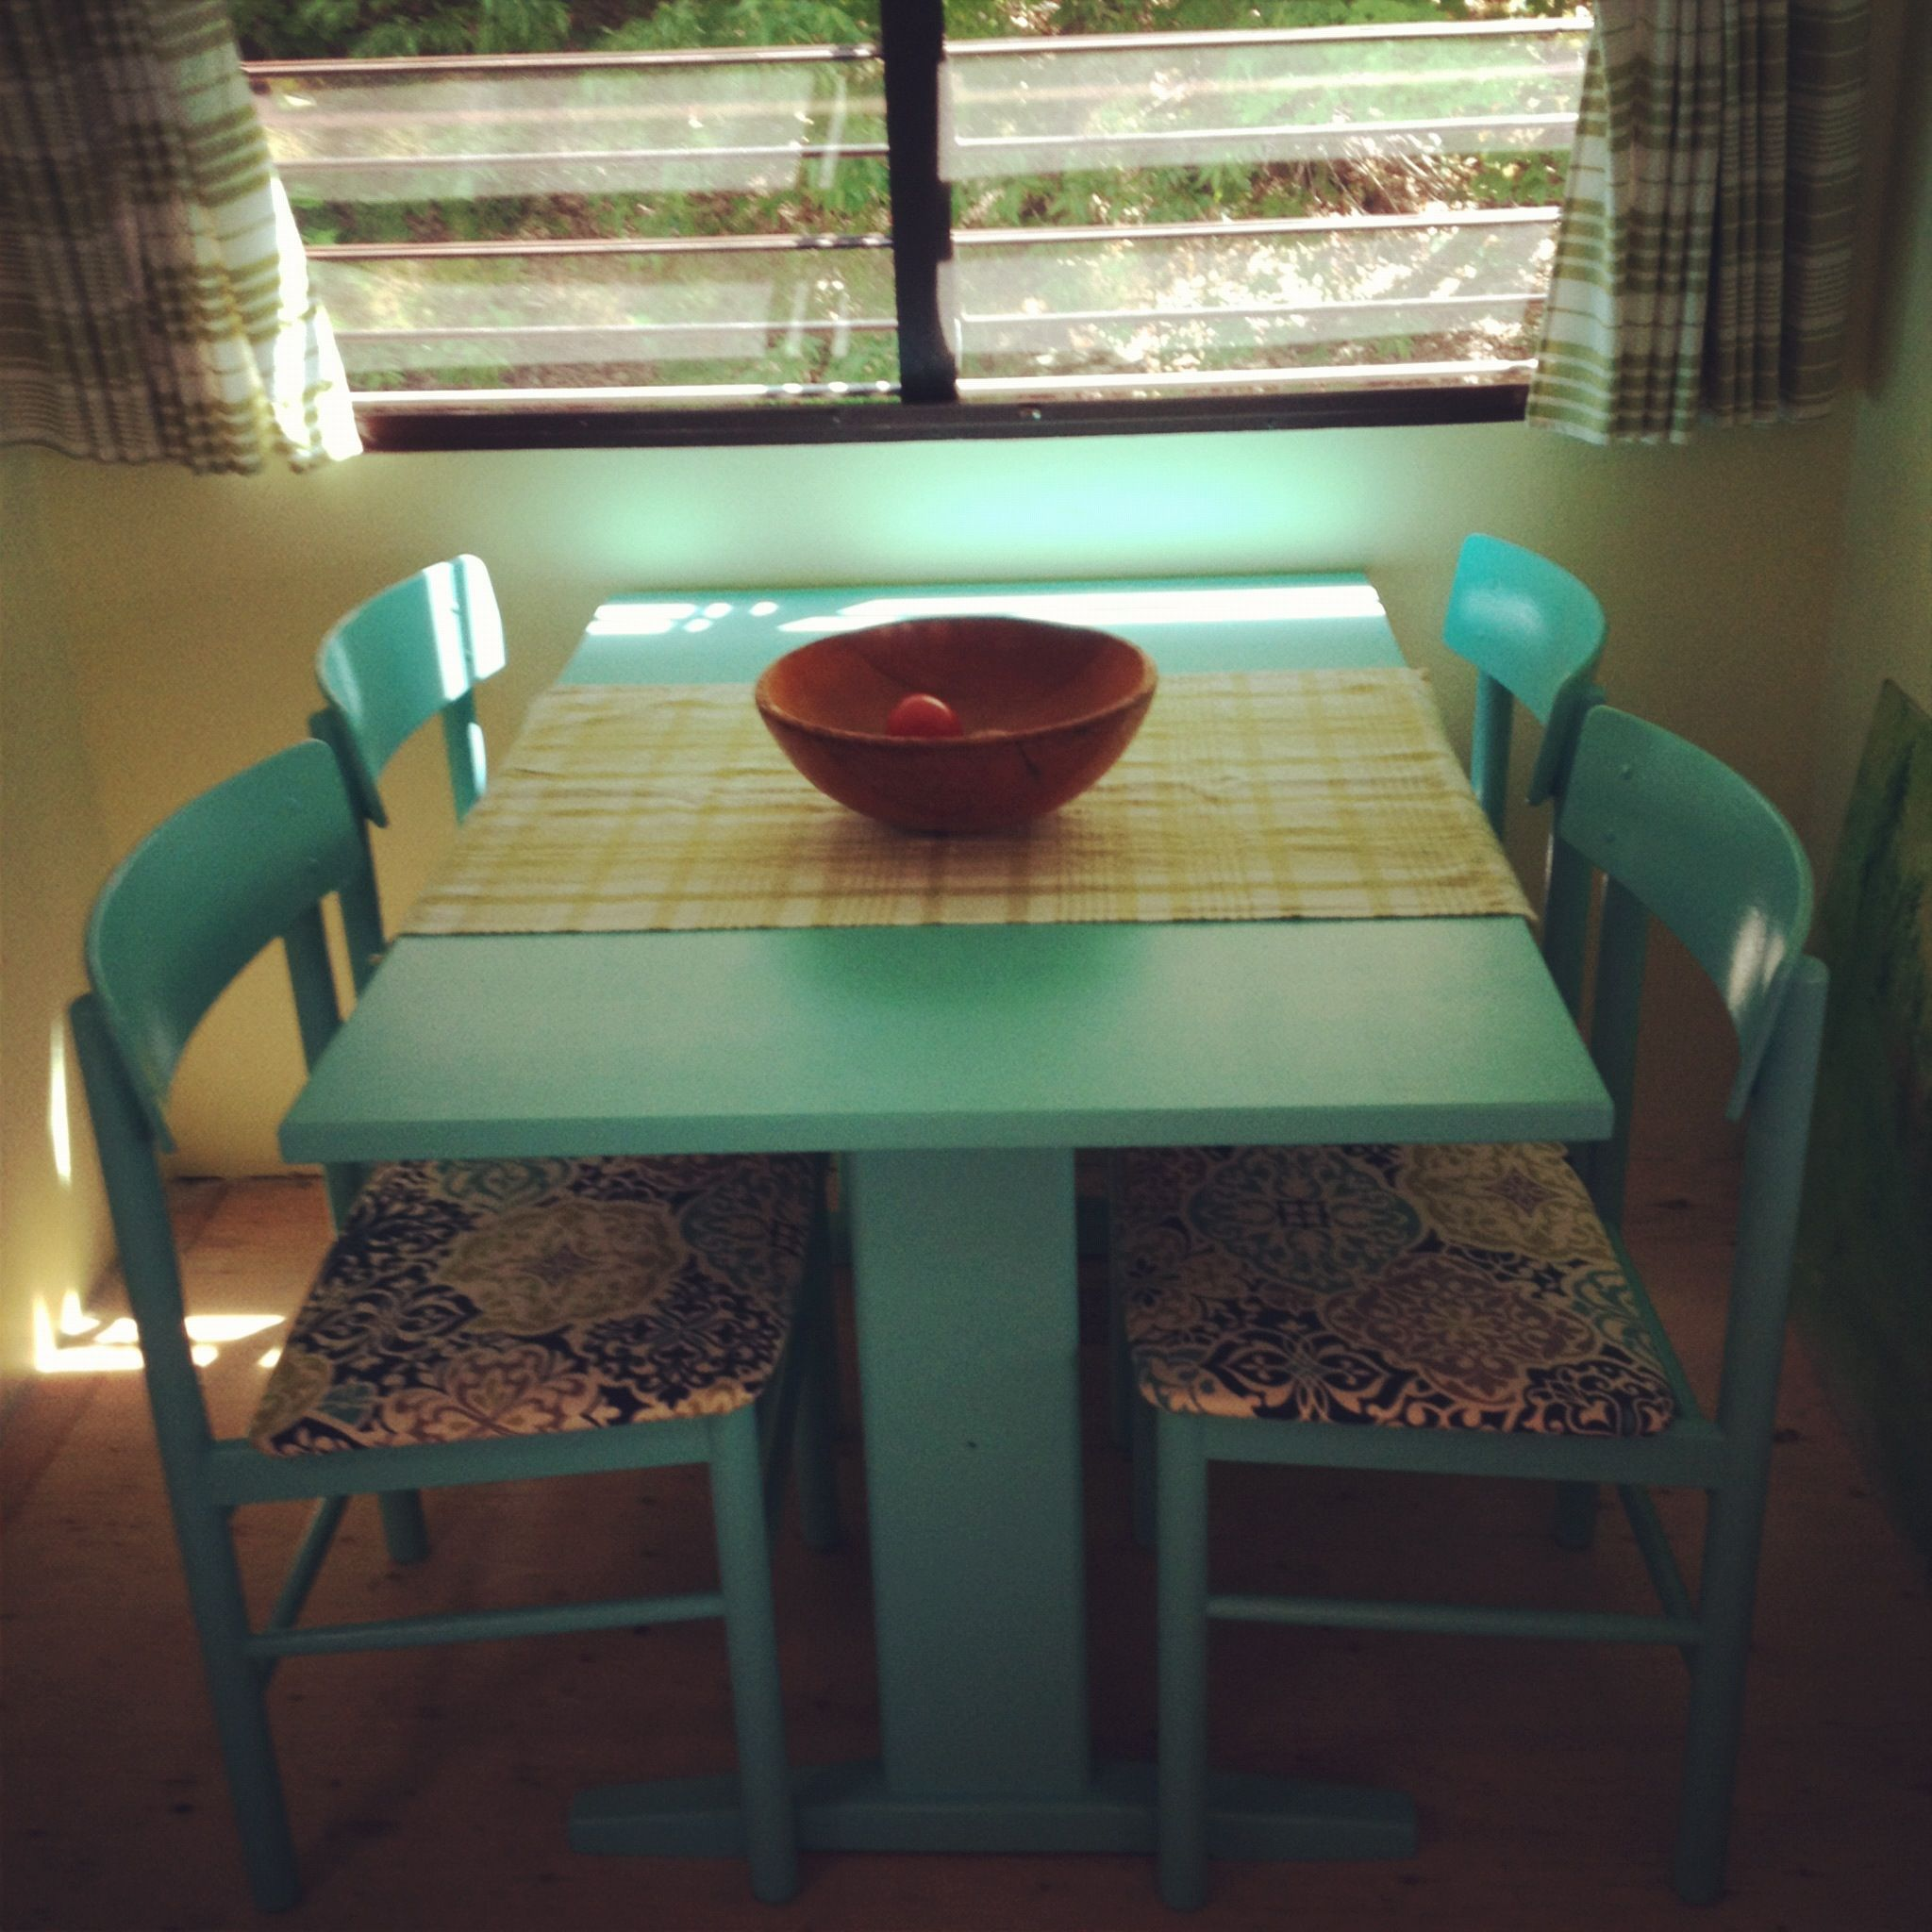 We repainted our wooden table & chairs and recovered the seats. Curtains made of tea towels!